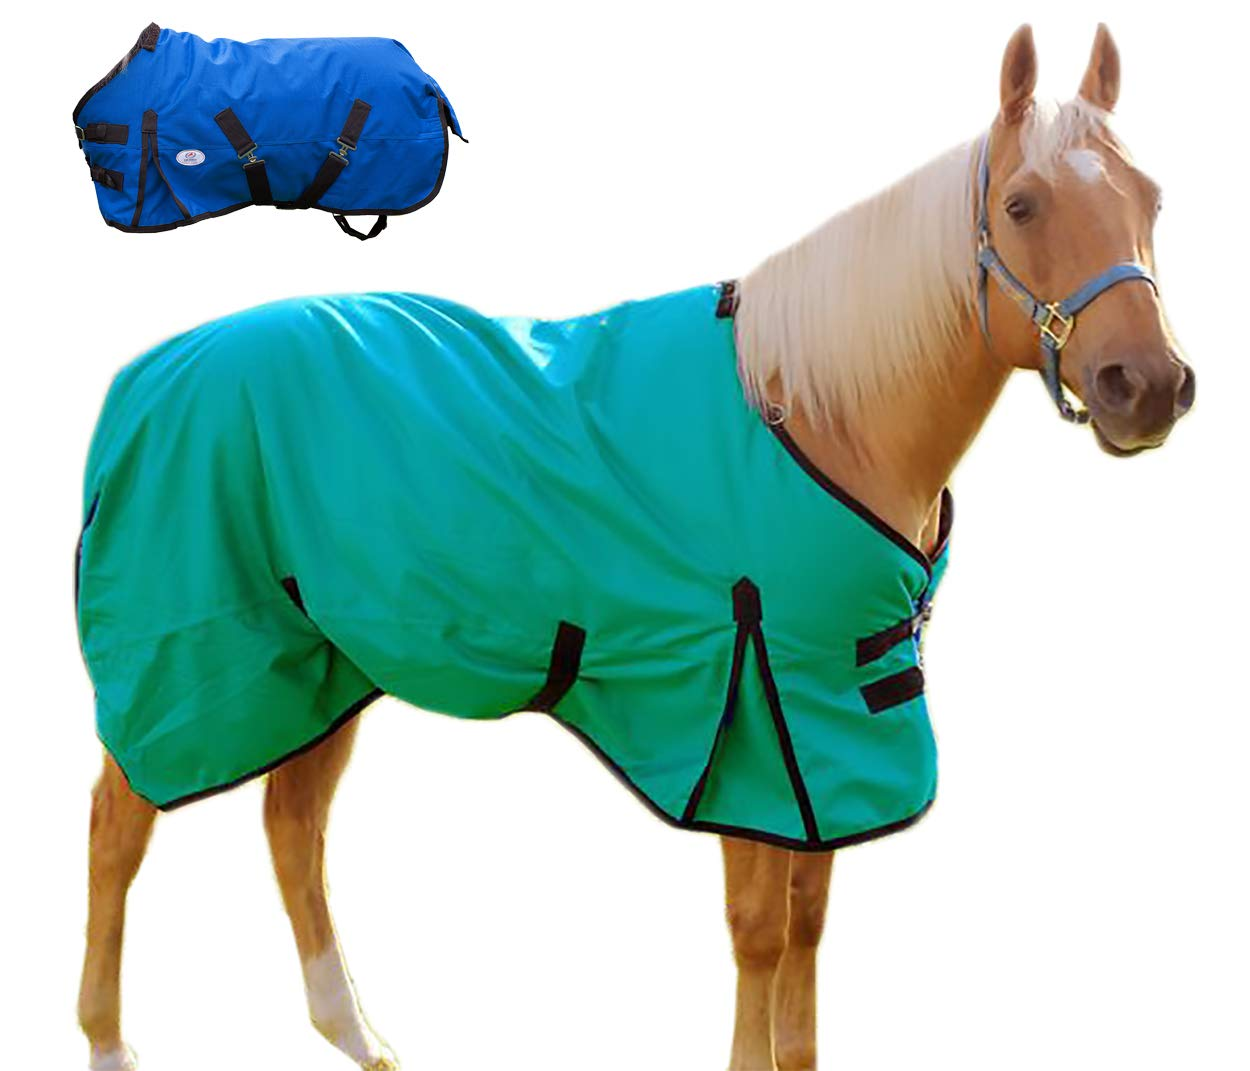 Derby Originals 1200D Ripstop Waterproof Nylon Horse Winter Turnout Blanket with 300g Polyfil Insulation - Two Year Limited Manufacturer's Warranty Royal International 80-8037-GY-78